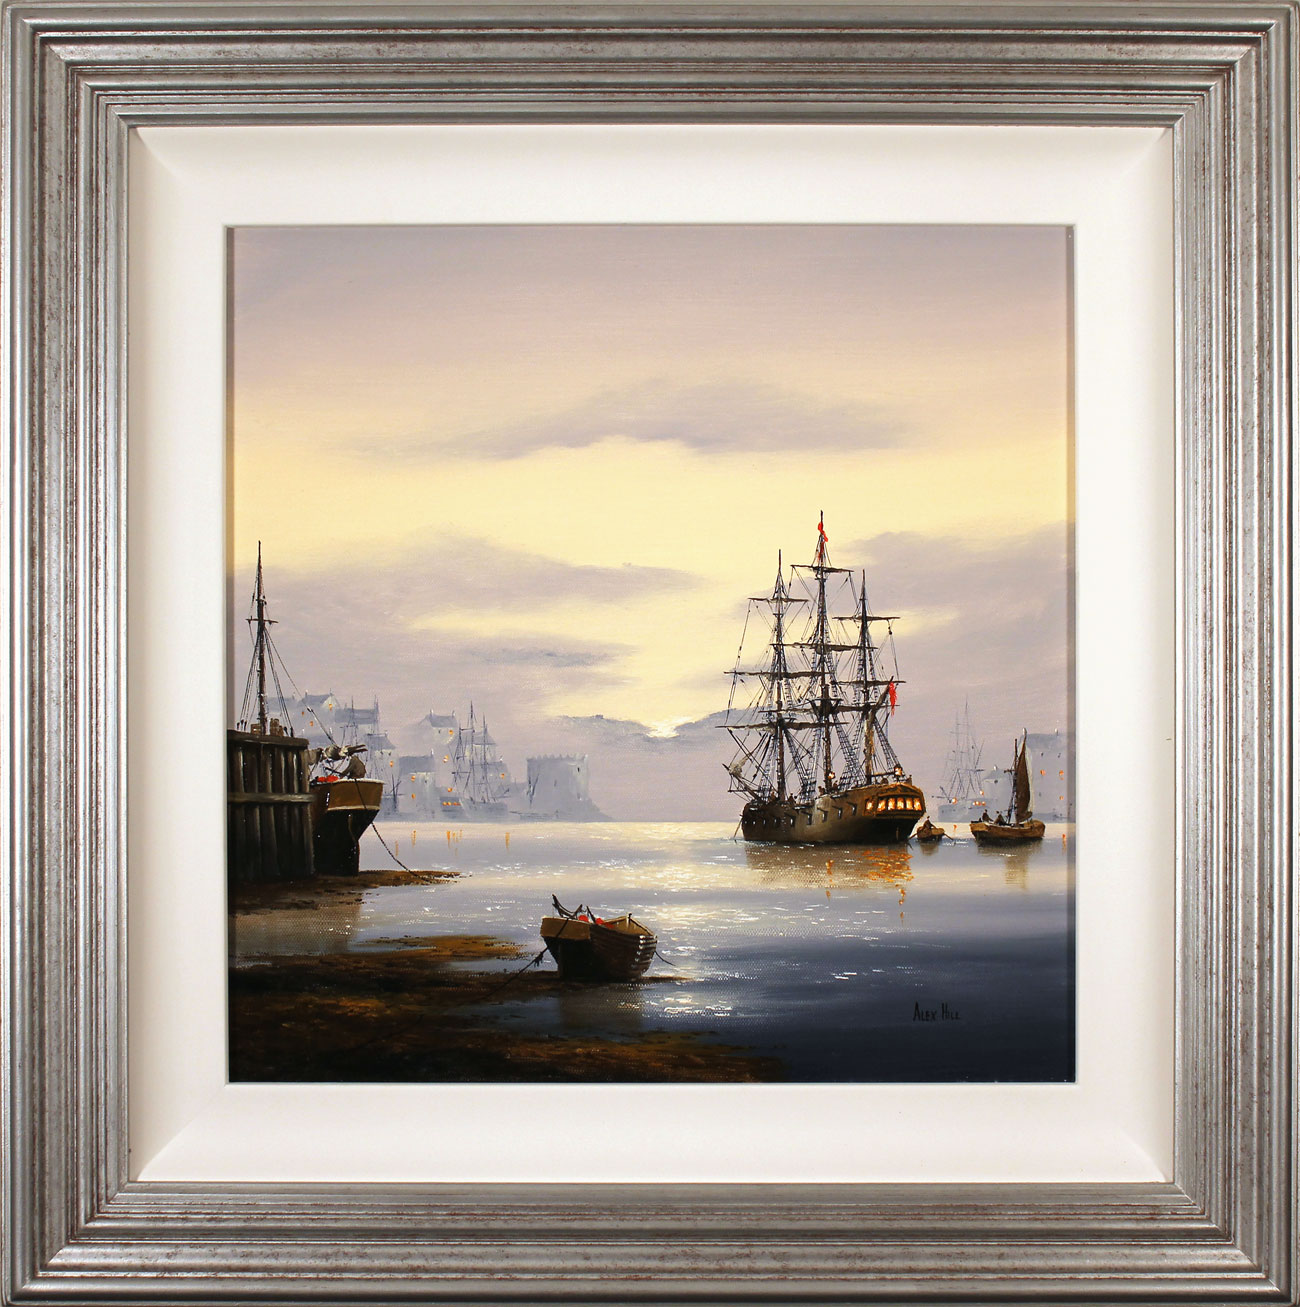 Alex Hill, Original oil painting on canvas, Sunrise Harbour Click to enlarge